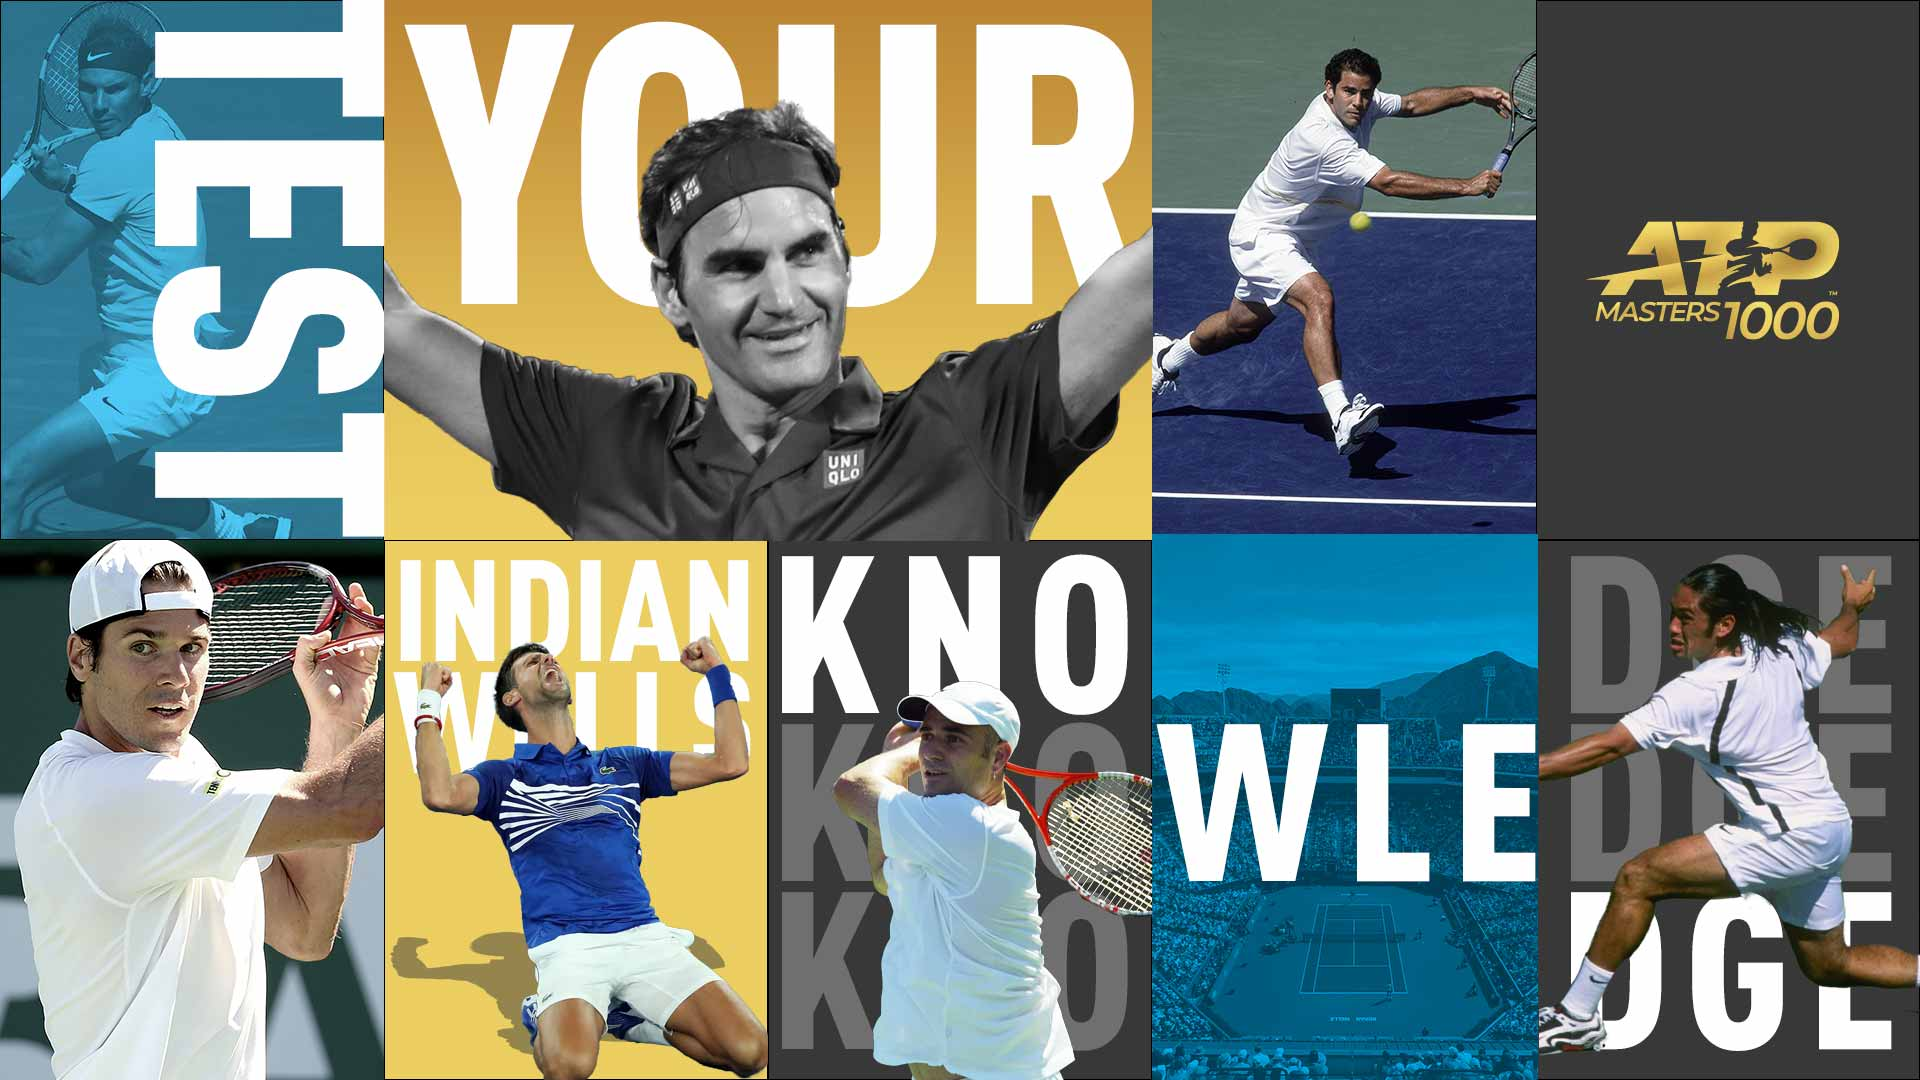 Tennis Quiz: Test Your Indian Wells Knowledge, BNP Paribas Open